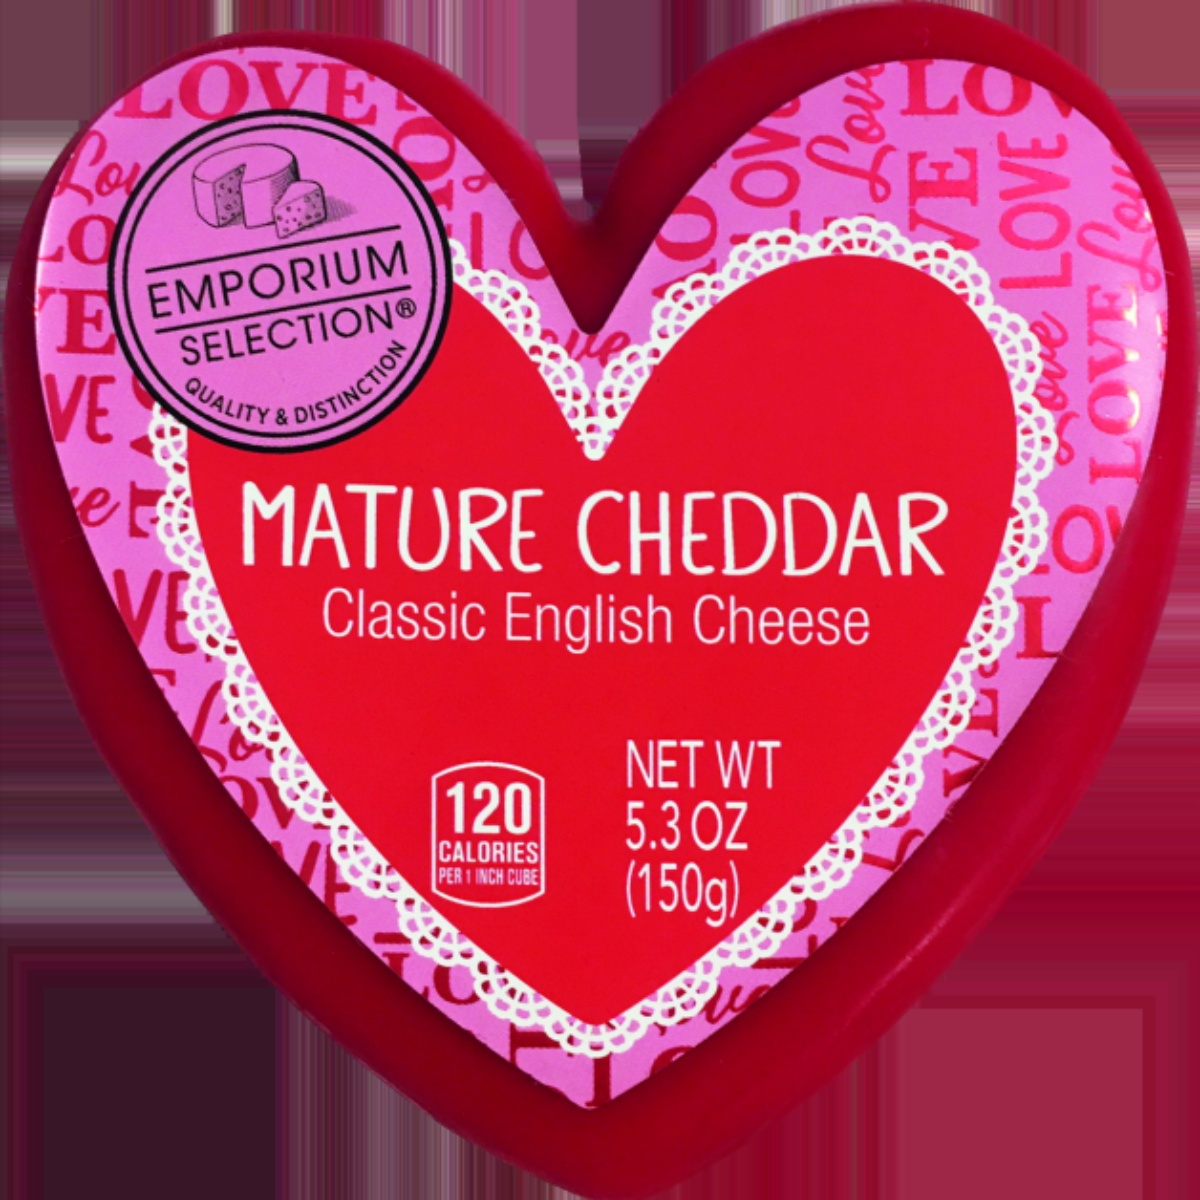 Emporium Selection heart-shaped cheddar cheese